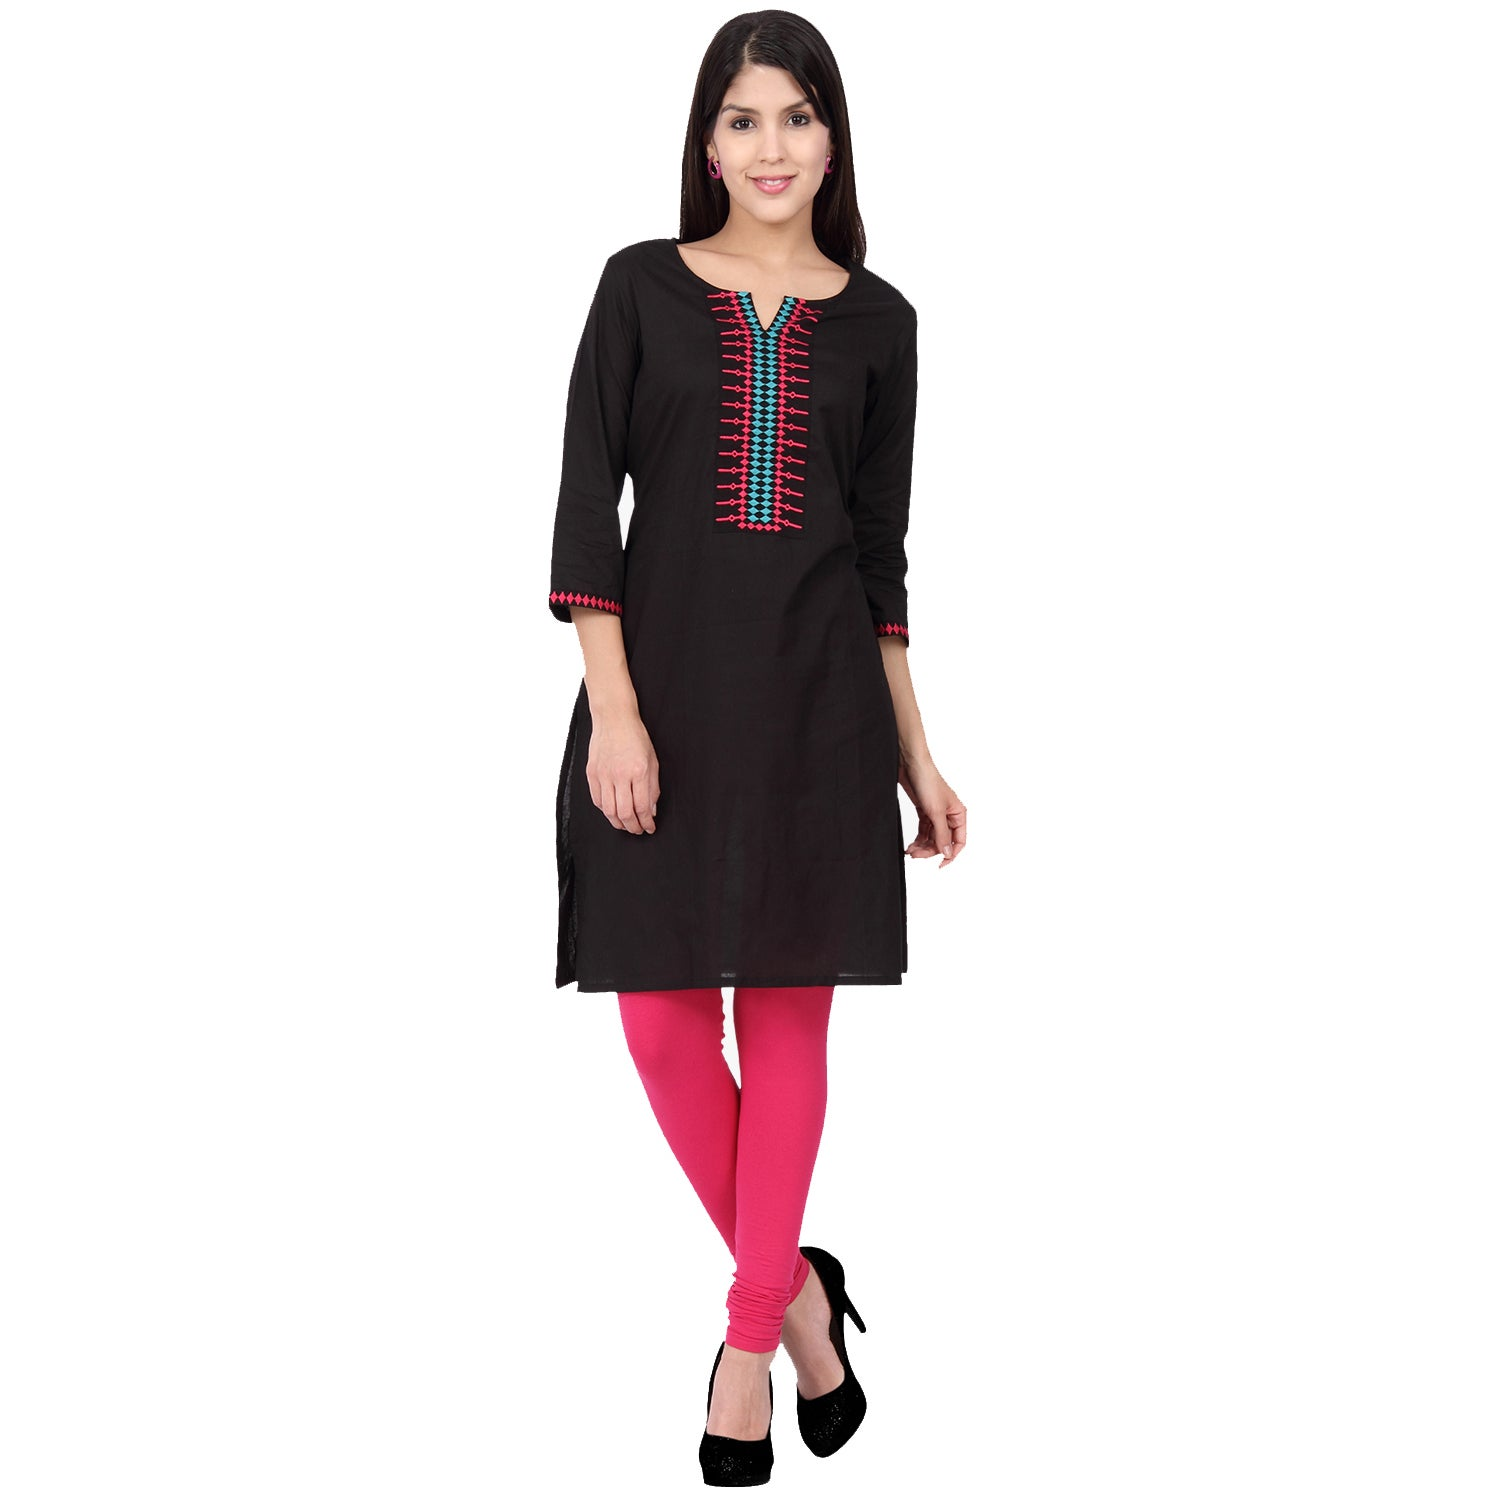 In-Sattva Ethnicity Women's Indian Fine Embroidered Class...